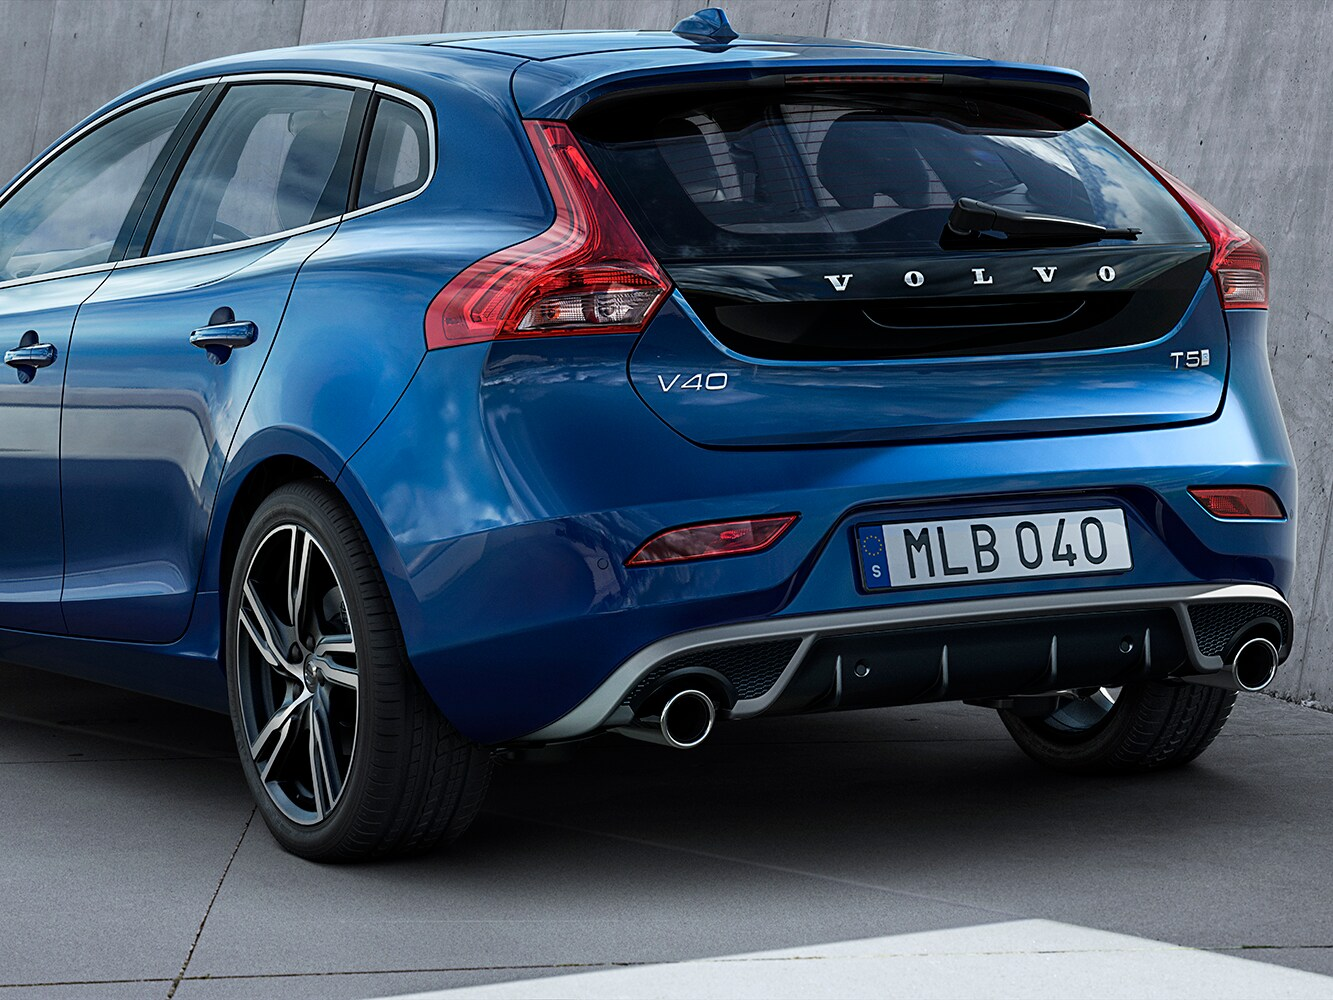 Close up of the lowered sport chasis on the Volvo V40 R-Design